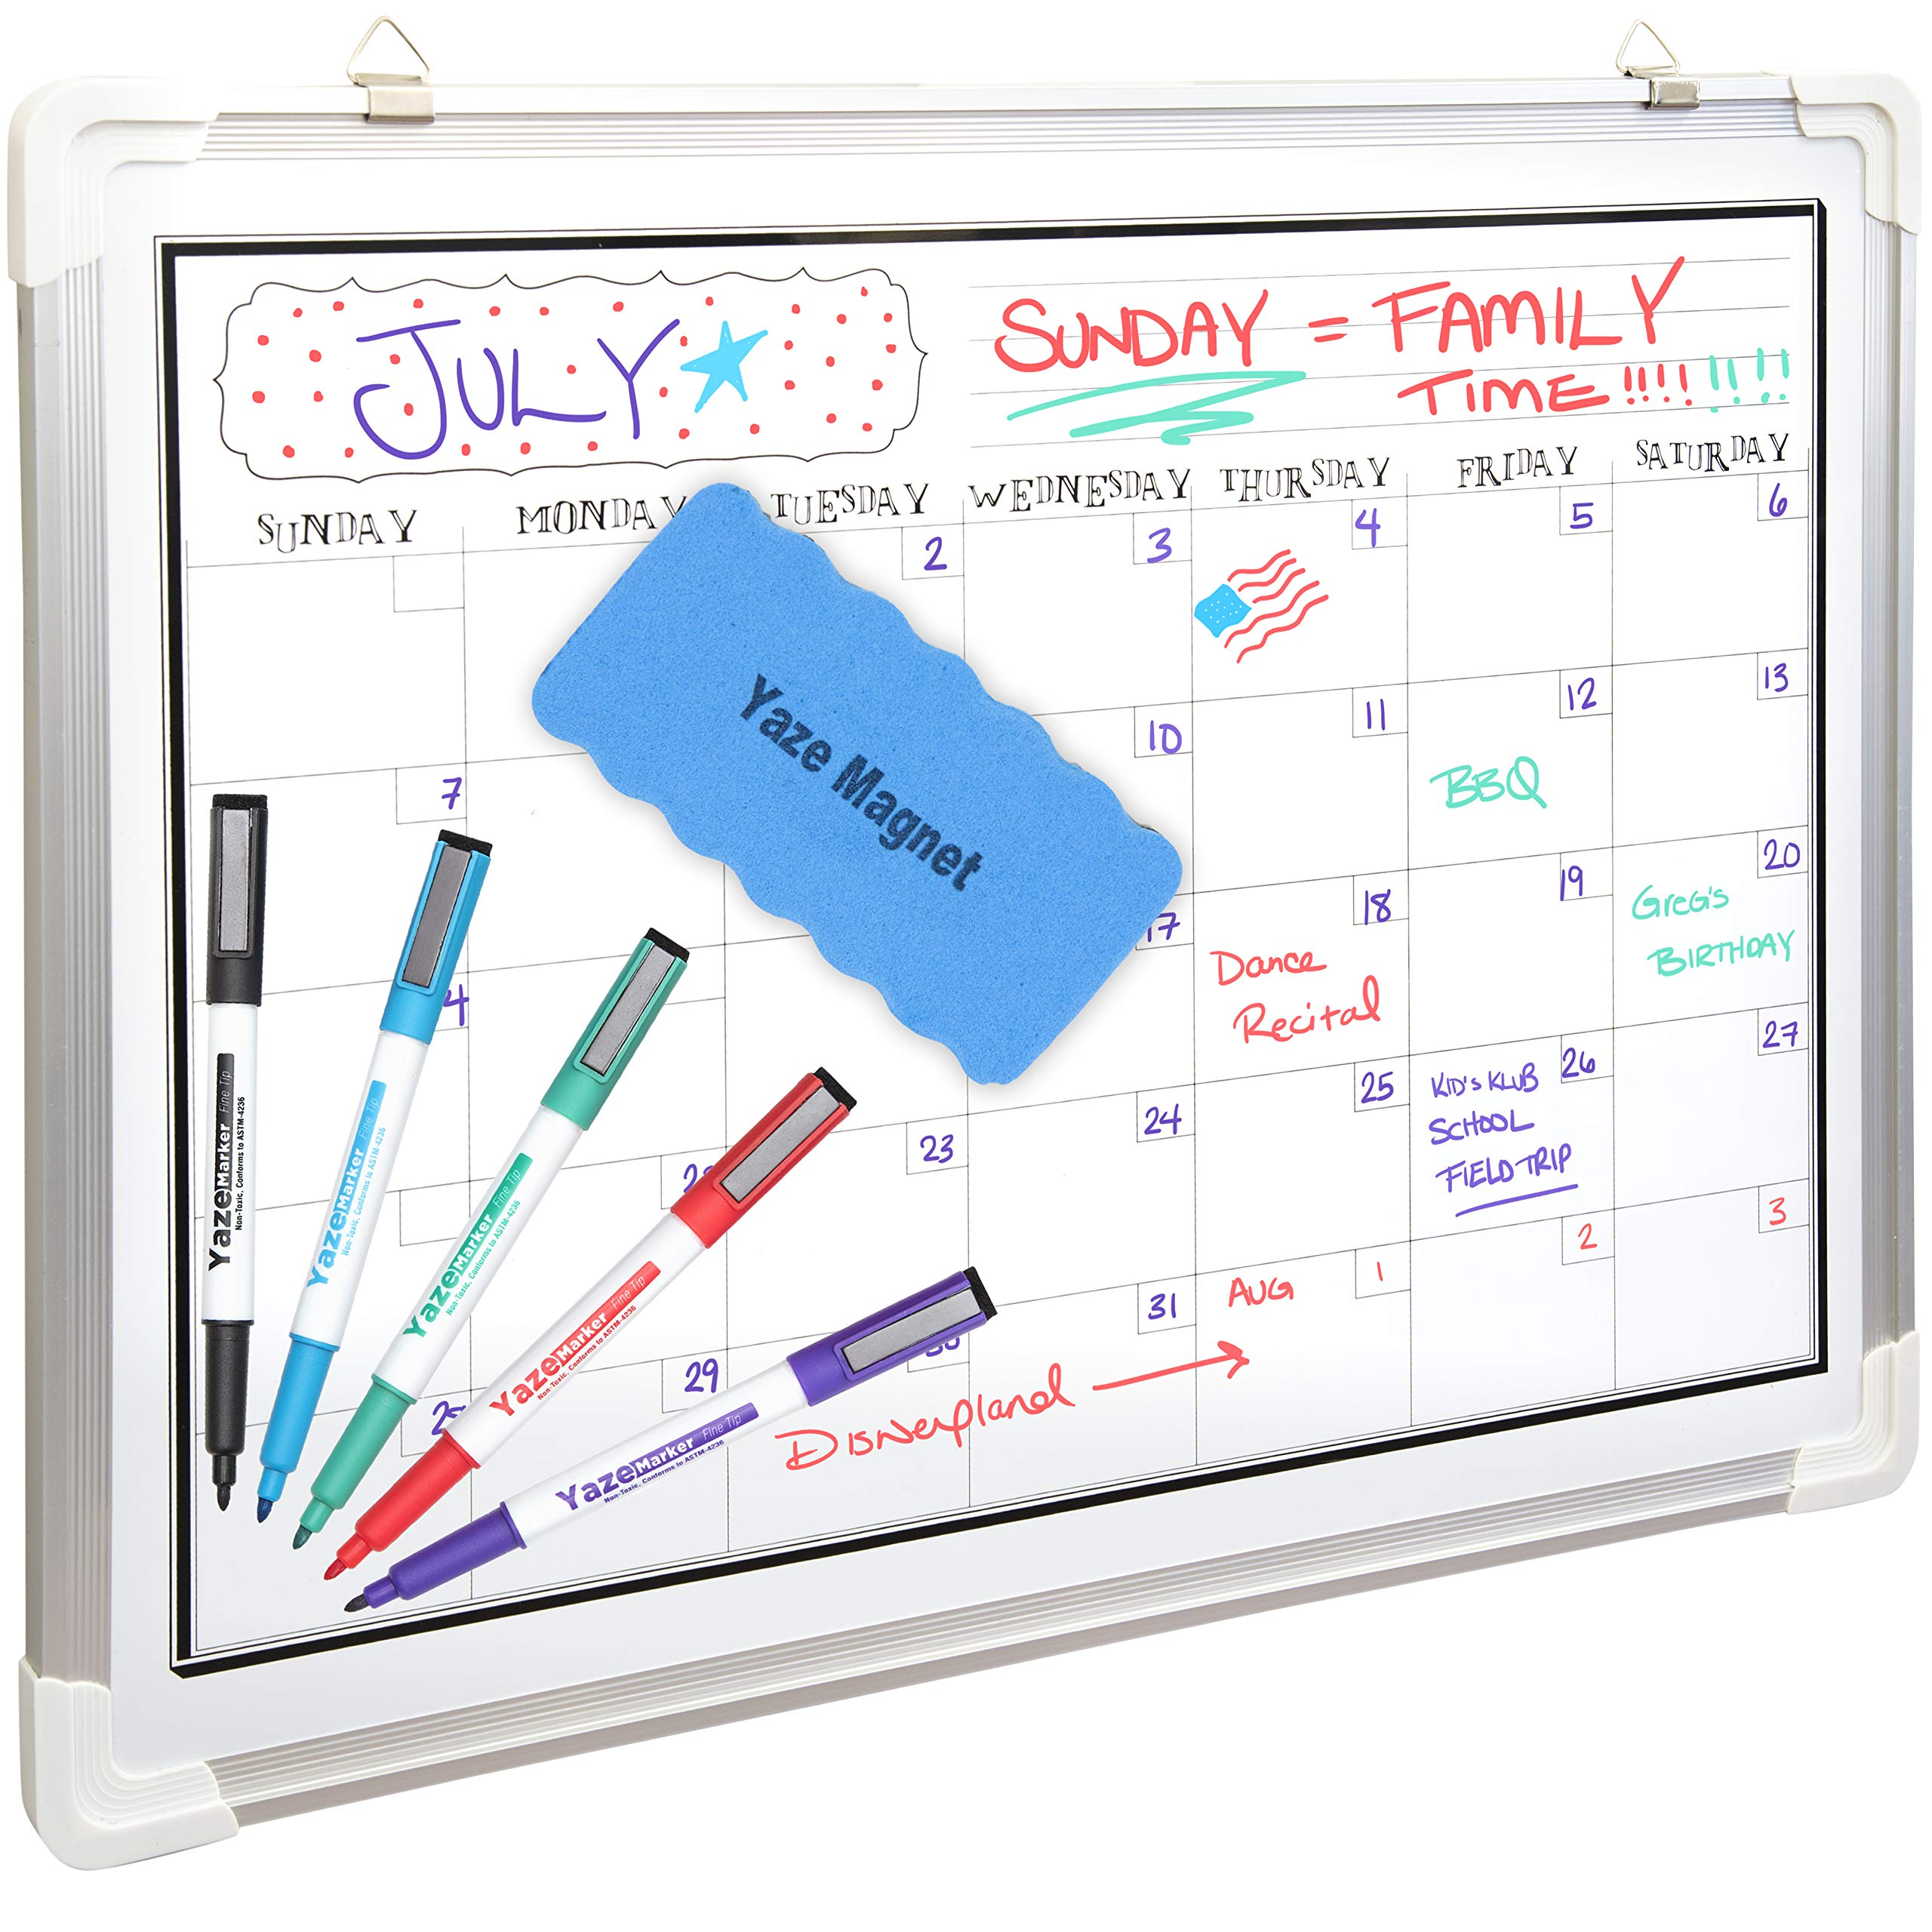 White Board Calendar for Wall | Dry Erase Monthly Planner | 24X18'' | 5 Magnetic Markers & Large Eraser | Stain Resistant Surface | Hanging Whiteboard Organizer for Home Office, Kids Chore, Classroom by Yaze Magnet